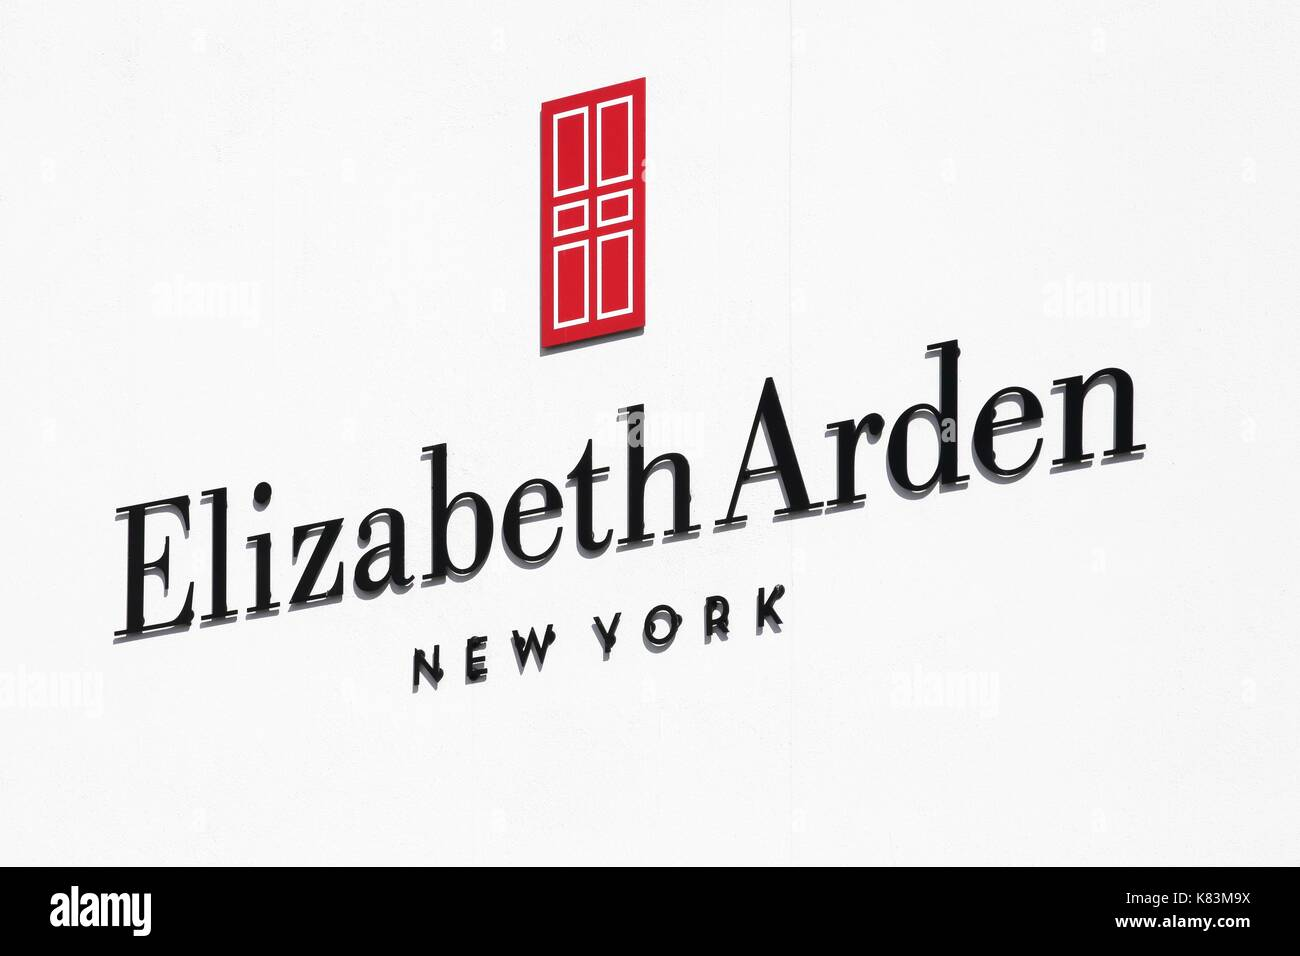 Warning against Elizabeth Arden Products Sold in India